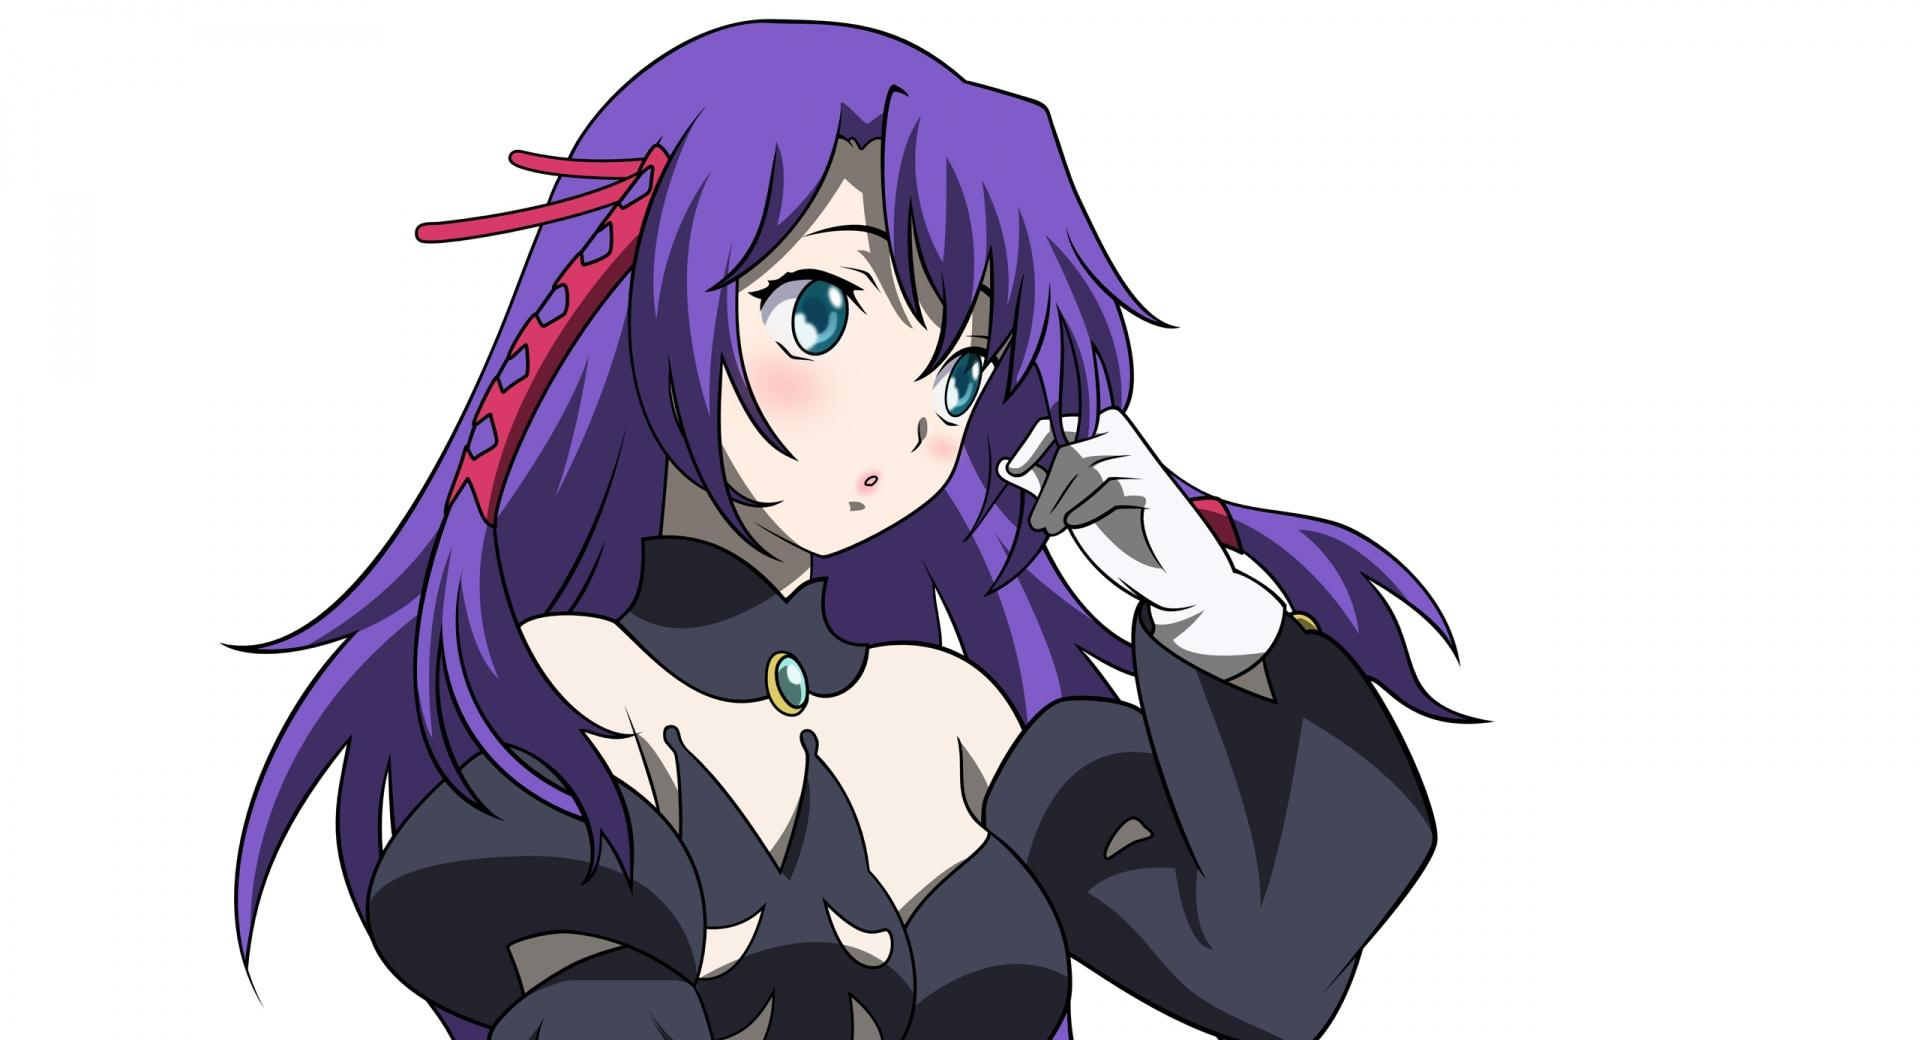 Anime Girl With Purple Hair wallpapers HD quality